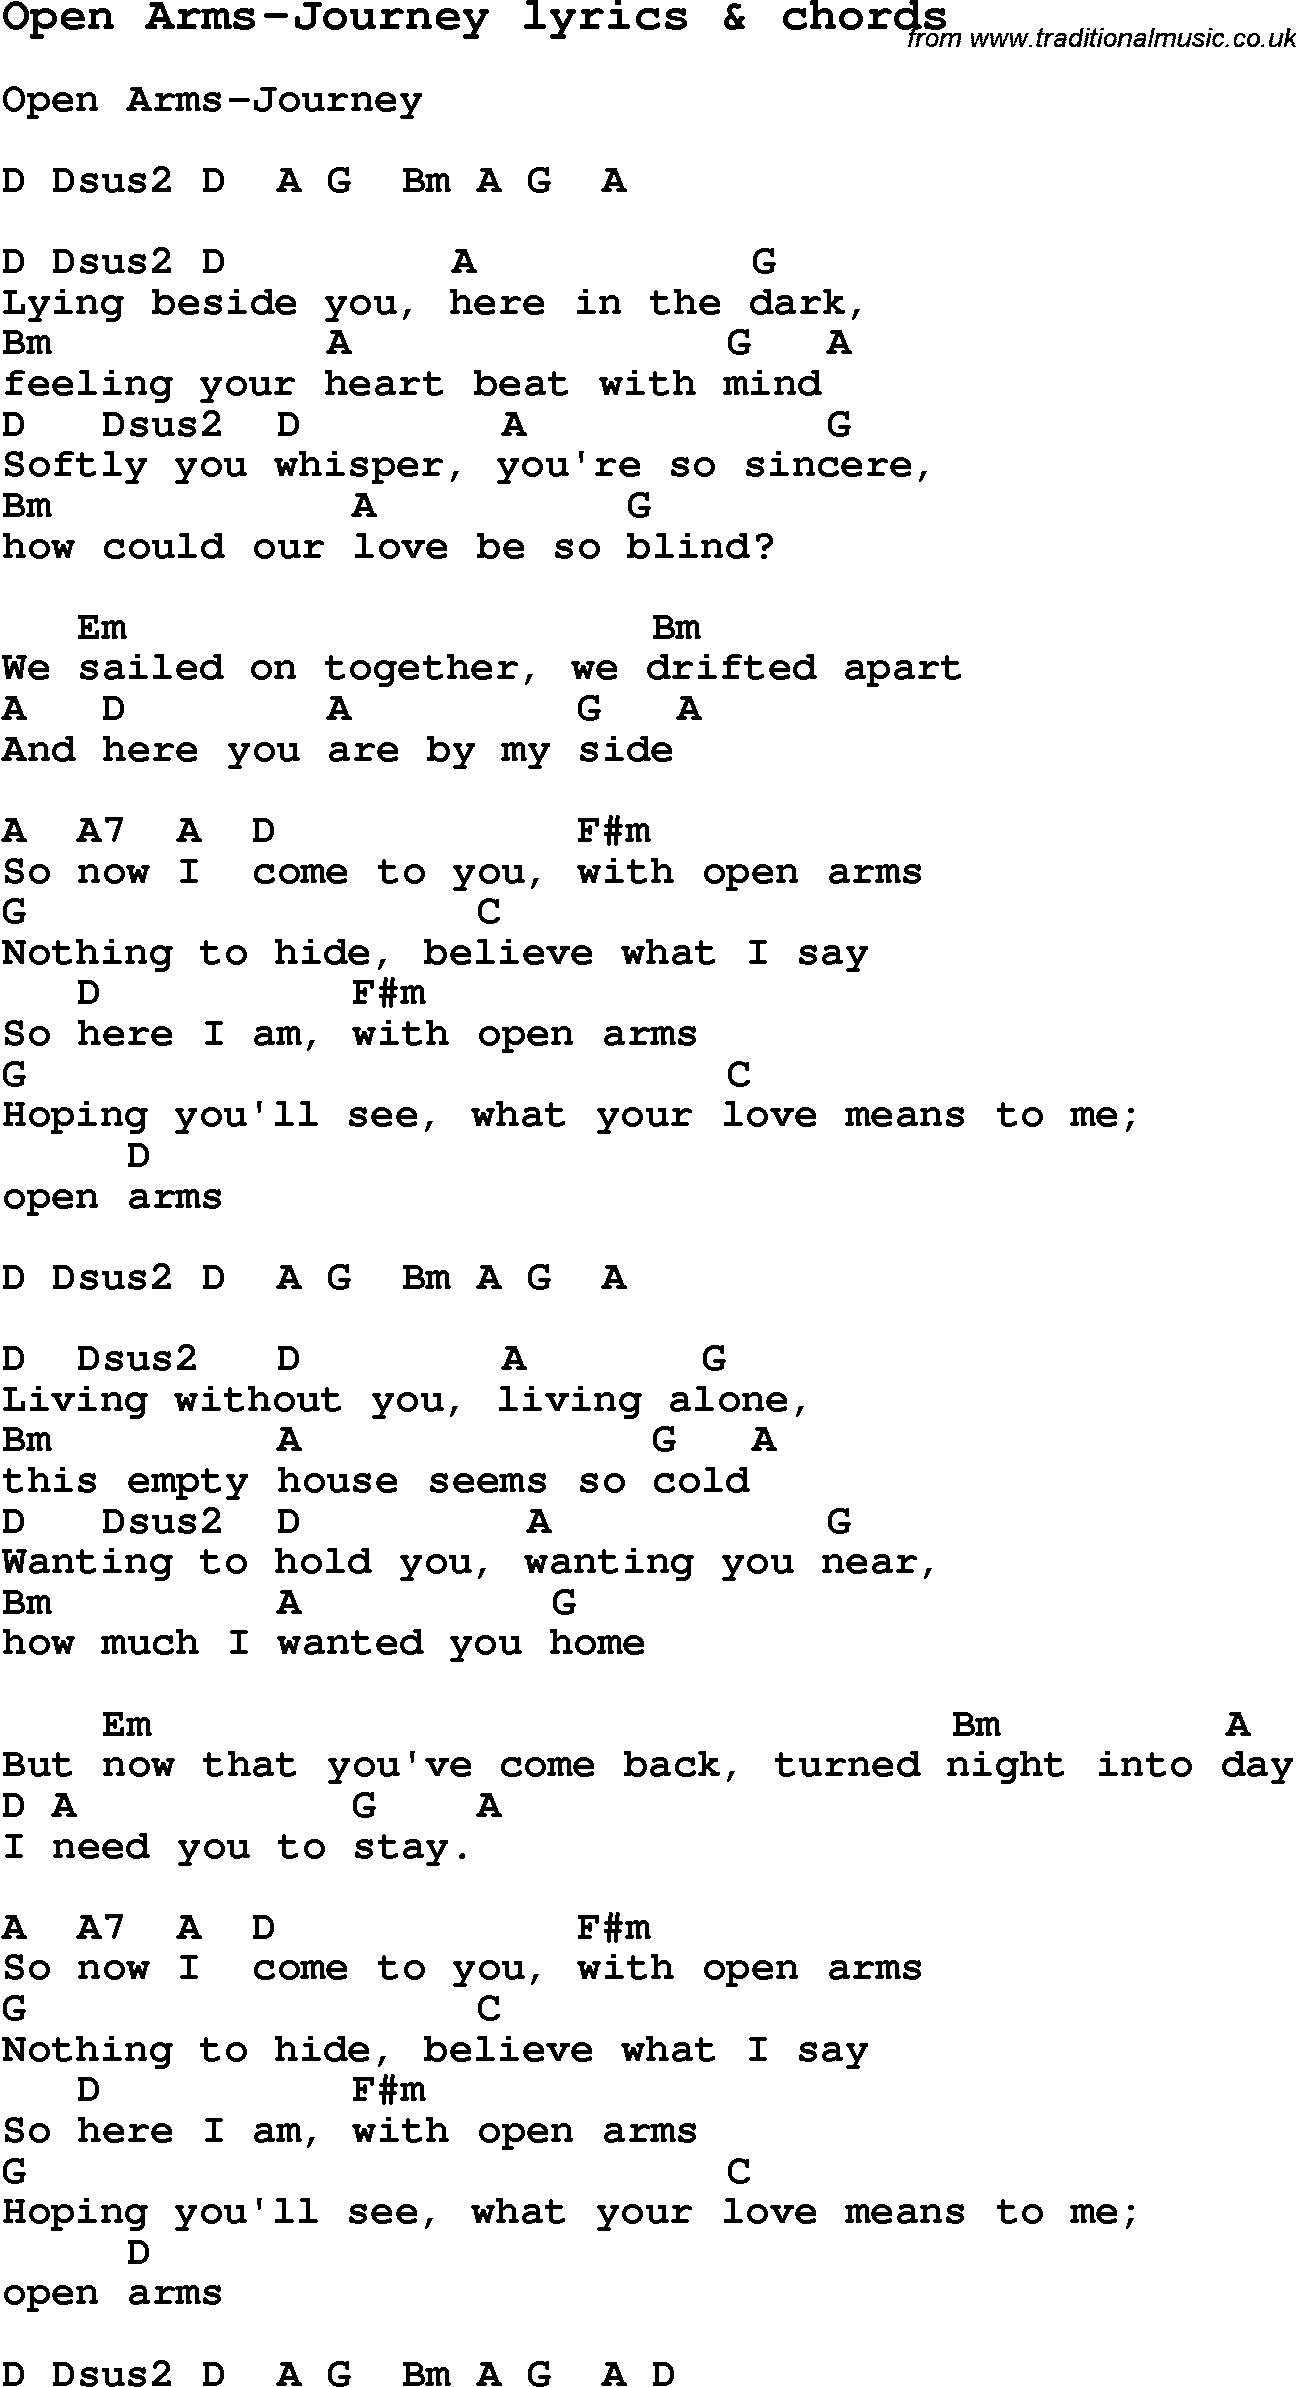 Love Song Lyrics For Open Arms Journey With Chords For Ukulele